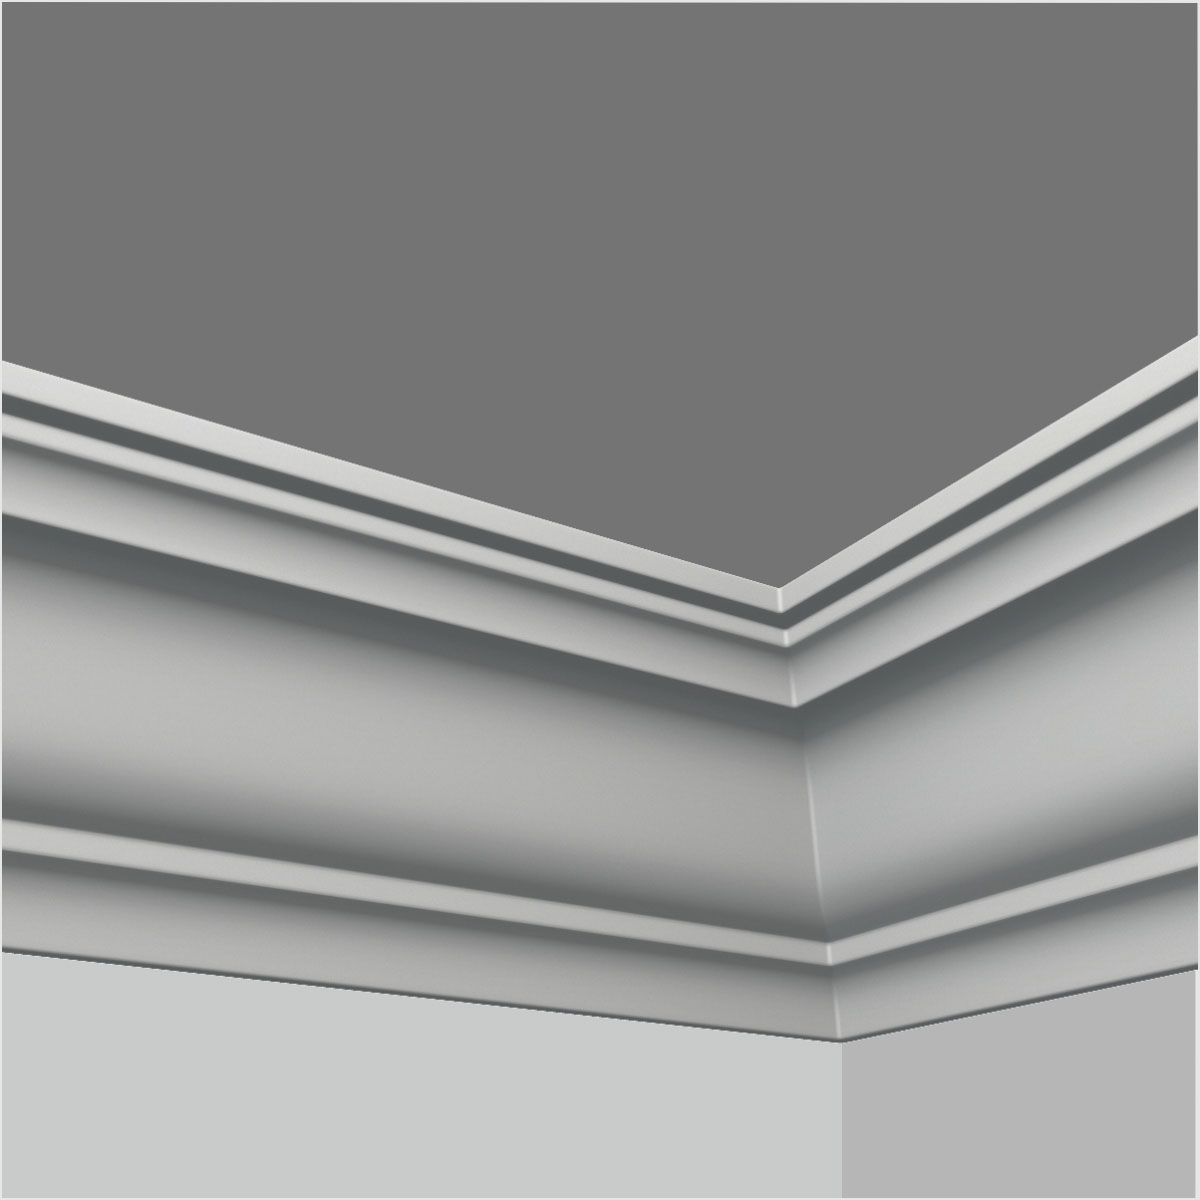 Polyurethane simple ceiling moulding